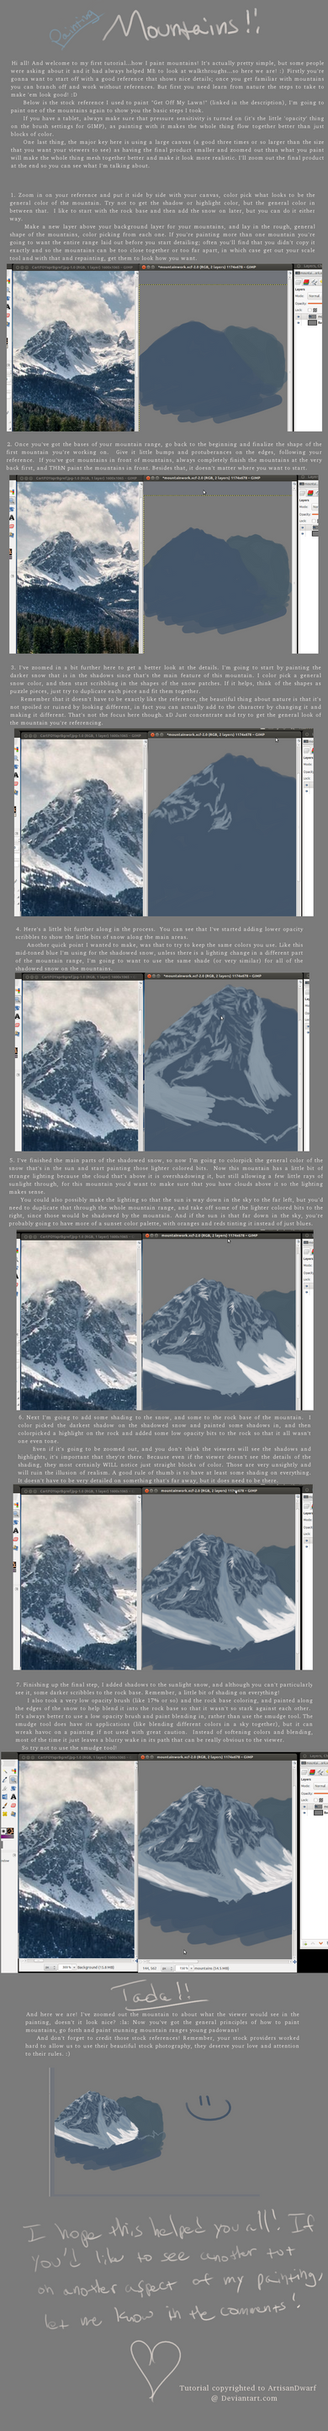 Tutorial: How to Paint Mountains! by Nebunezzari